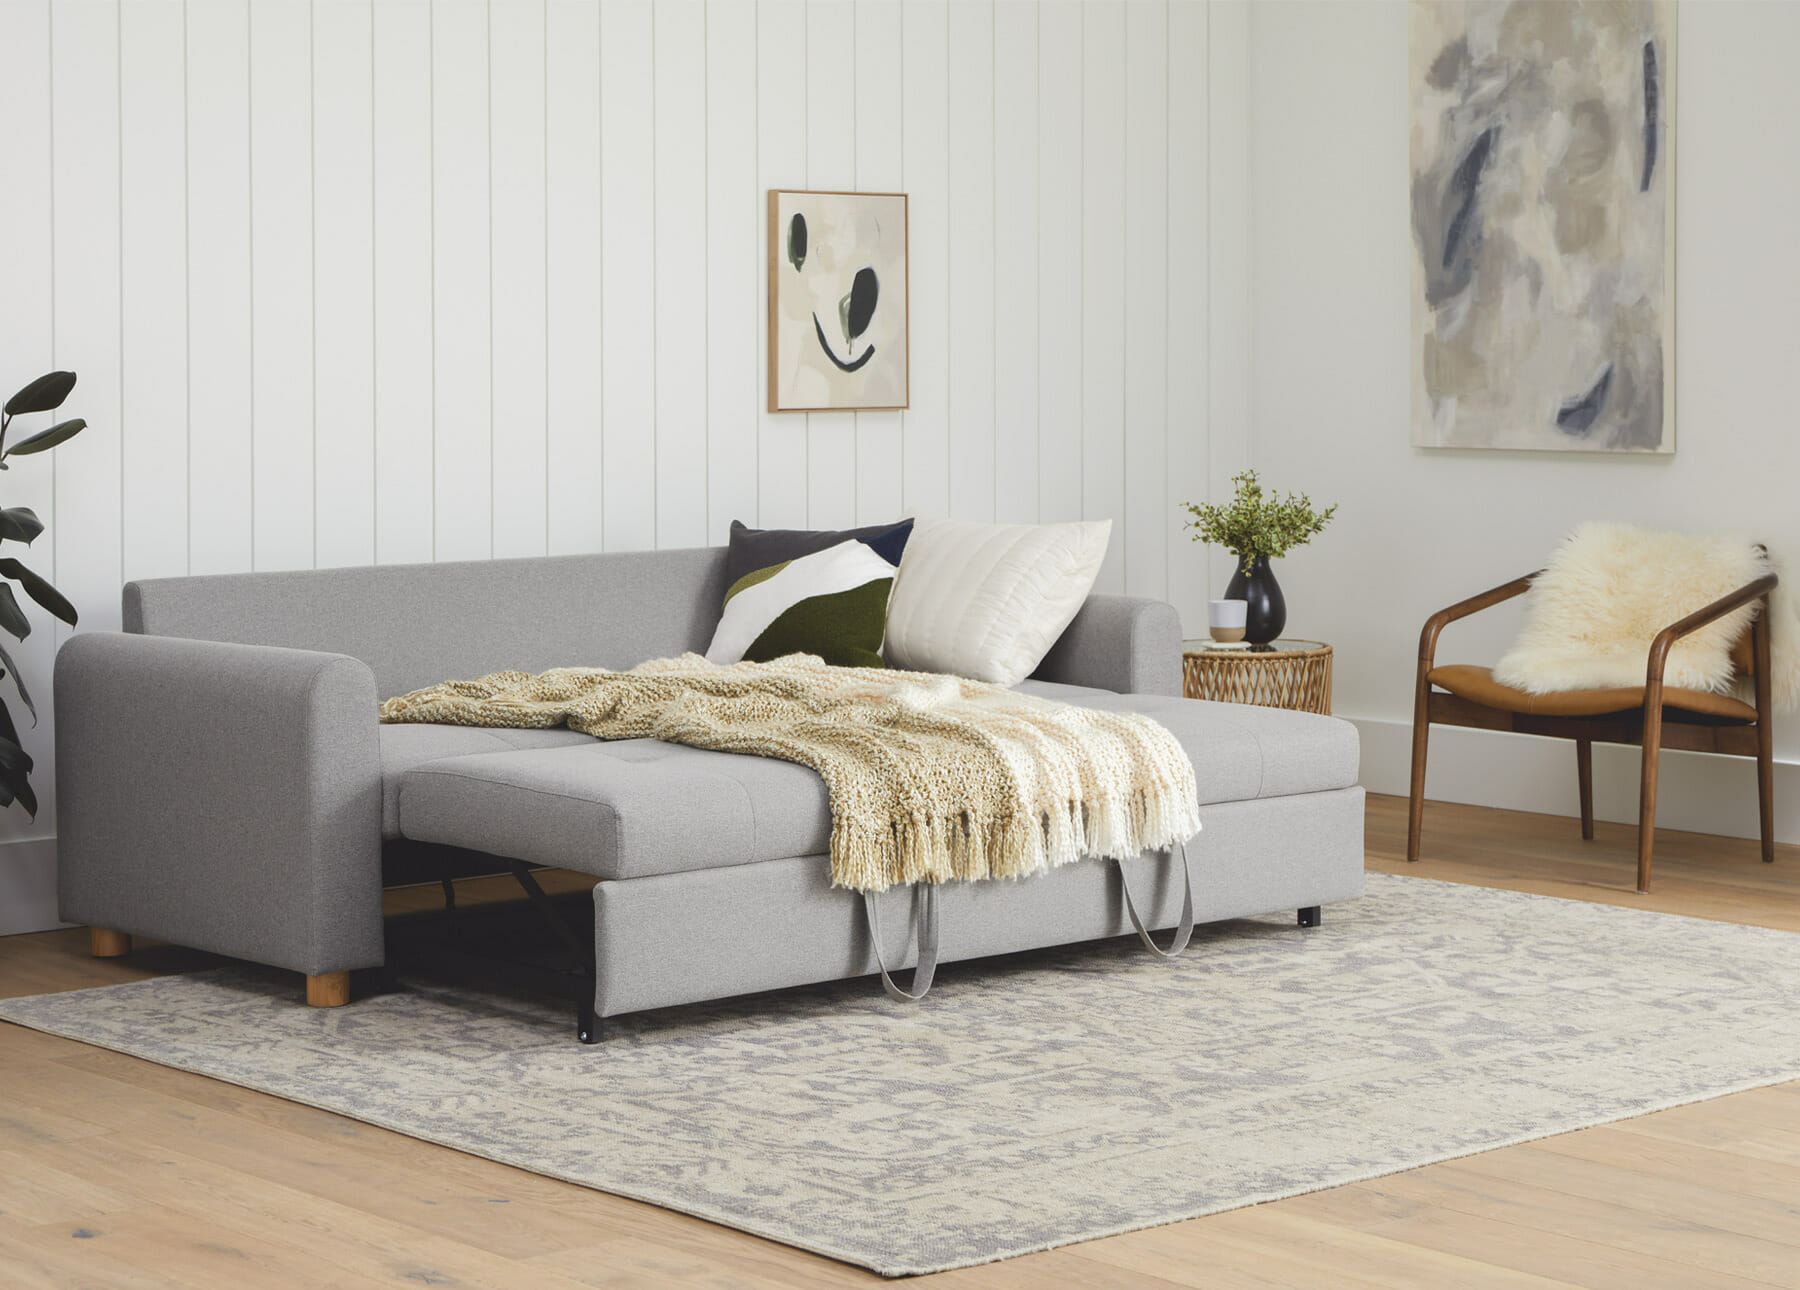 The Best Sofa Beds for a Small Space   Articulate